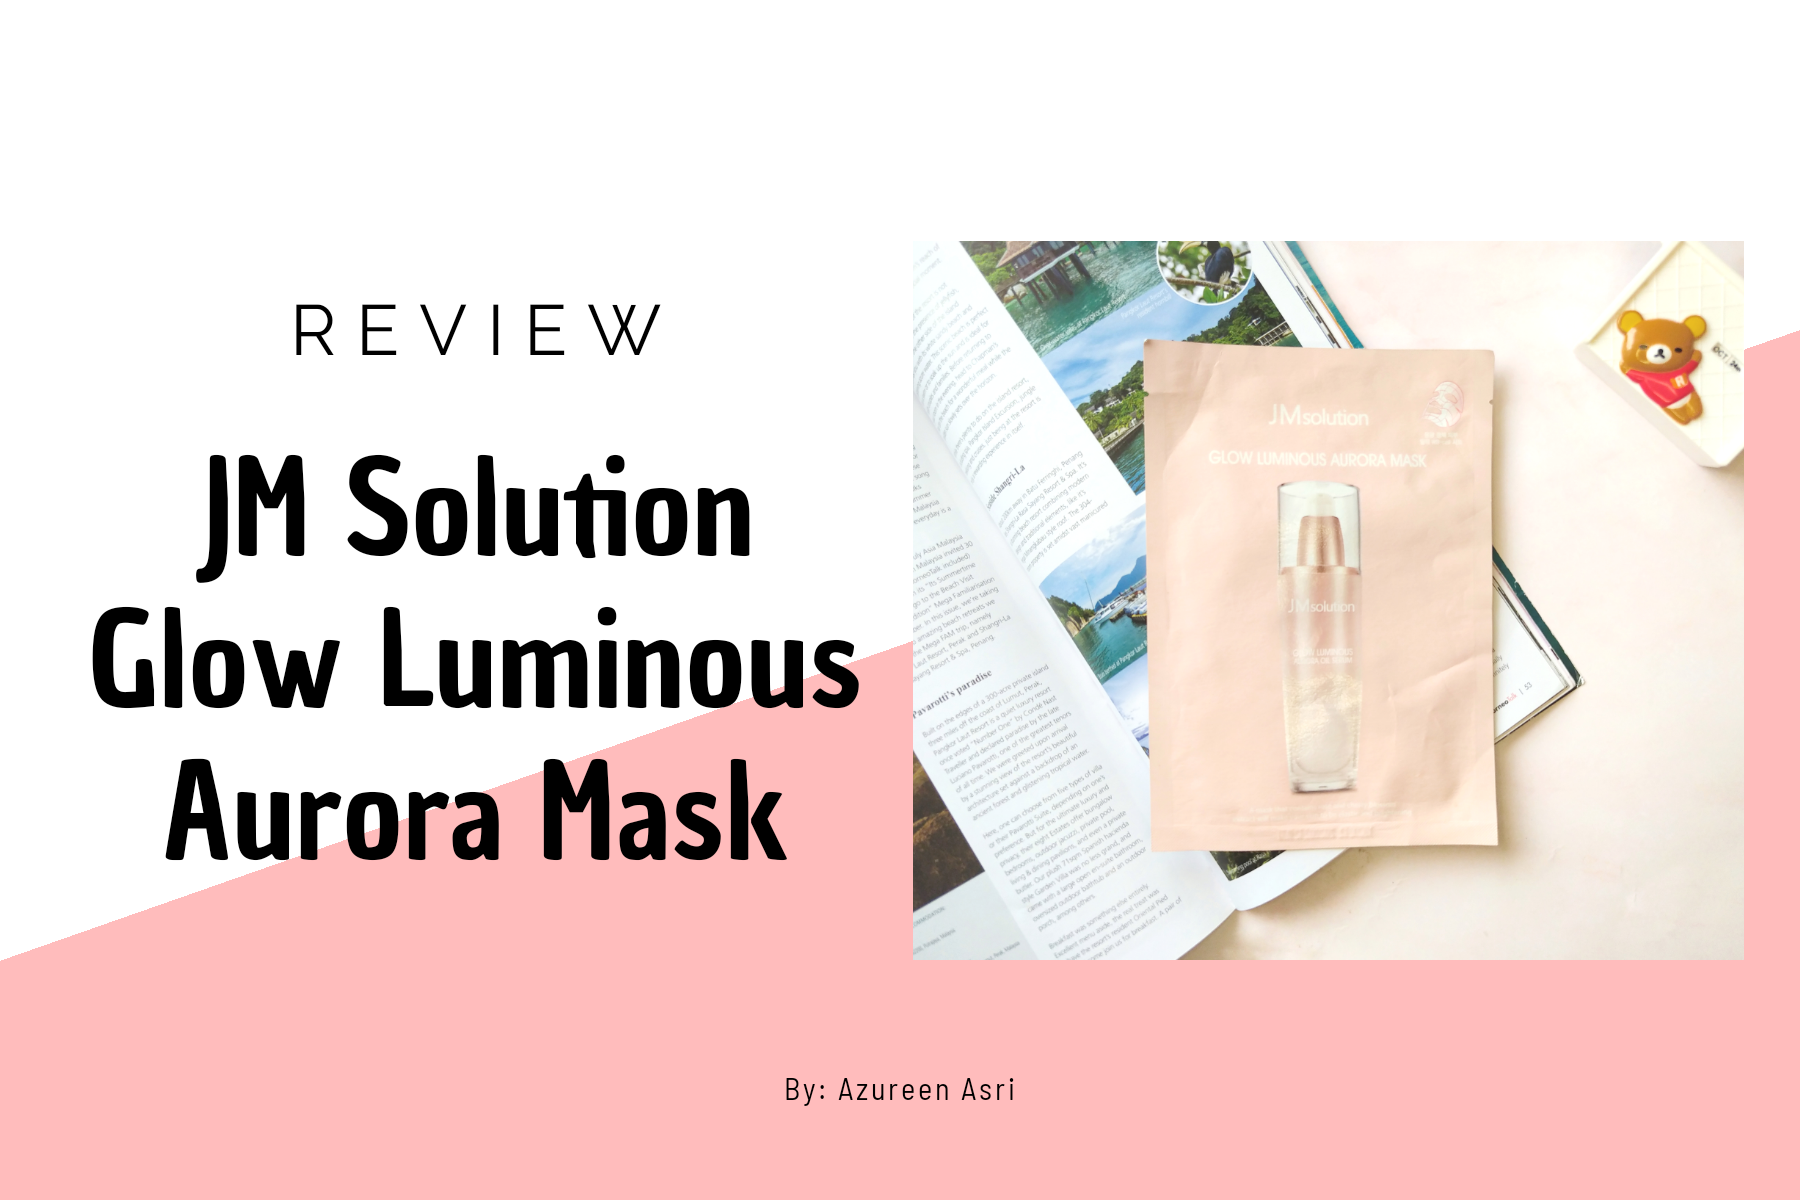 Brightening Dull Skin with JM Solution Glow Luminous Aurora Mask   REVIEW